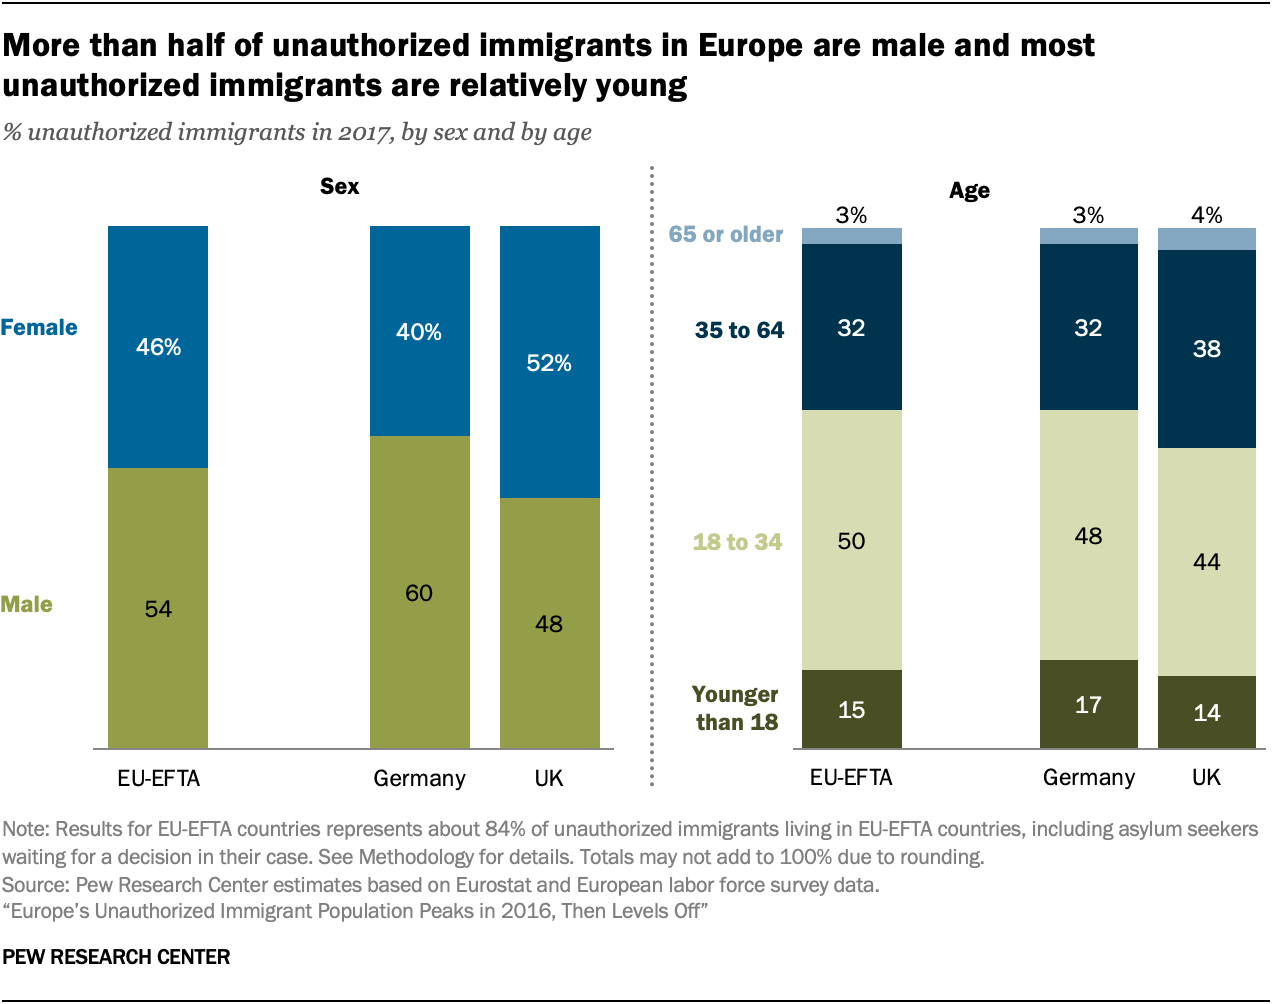 A chart showing more than half of unauthorized immigrants in Europe are male and most unauthorized immigrants are relatively young